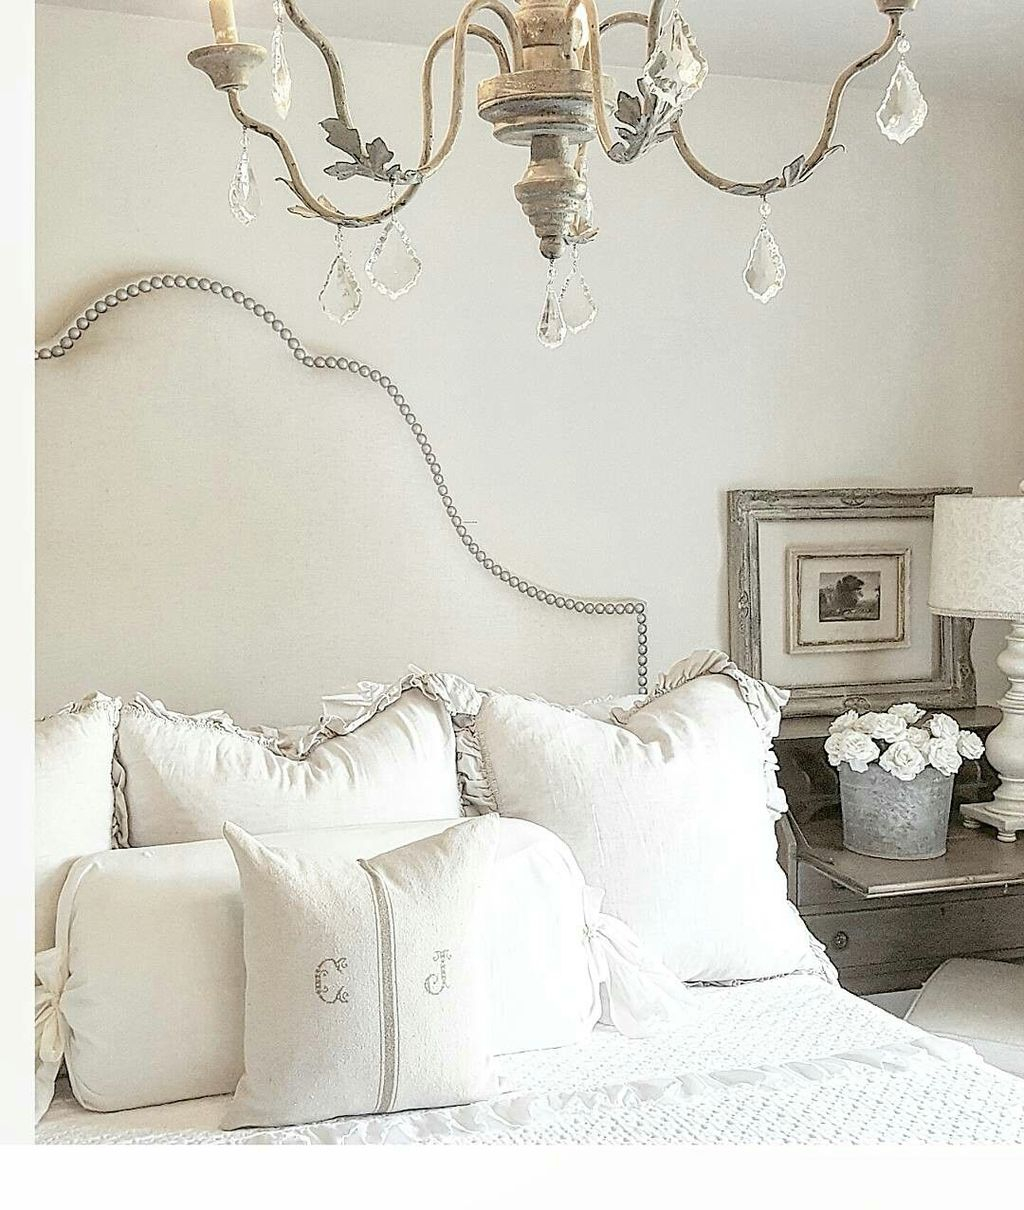 Cool French Country Master Bedroom Design Ideas With Farmhouse Style 29